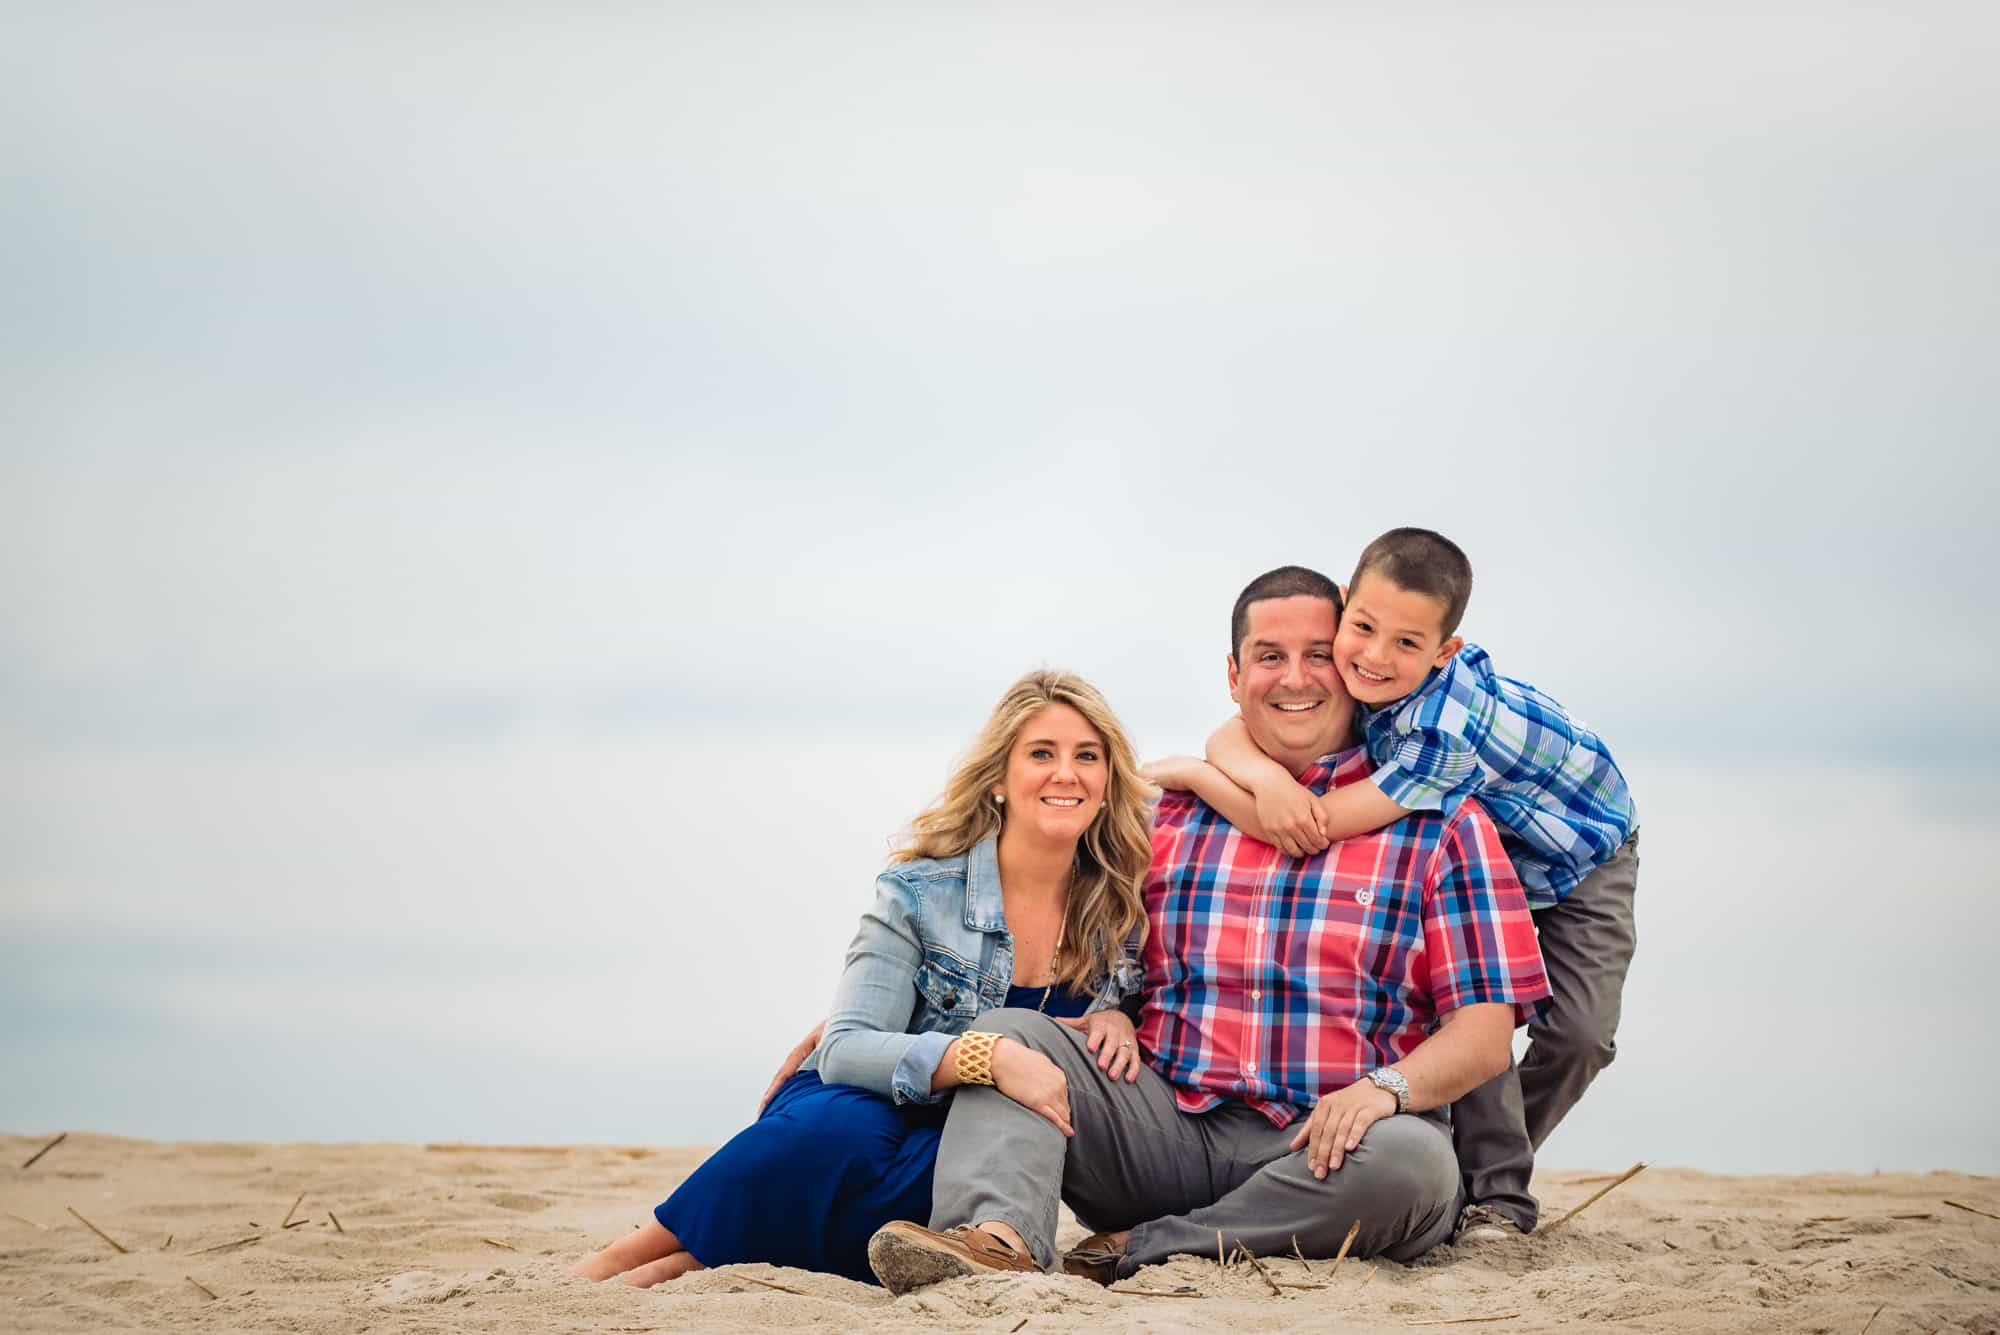 image of a family photo on the beach